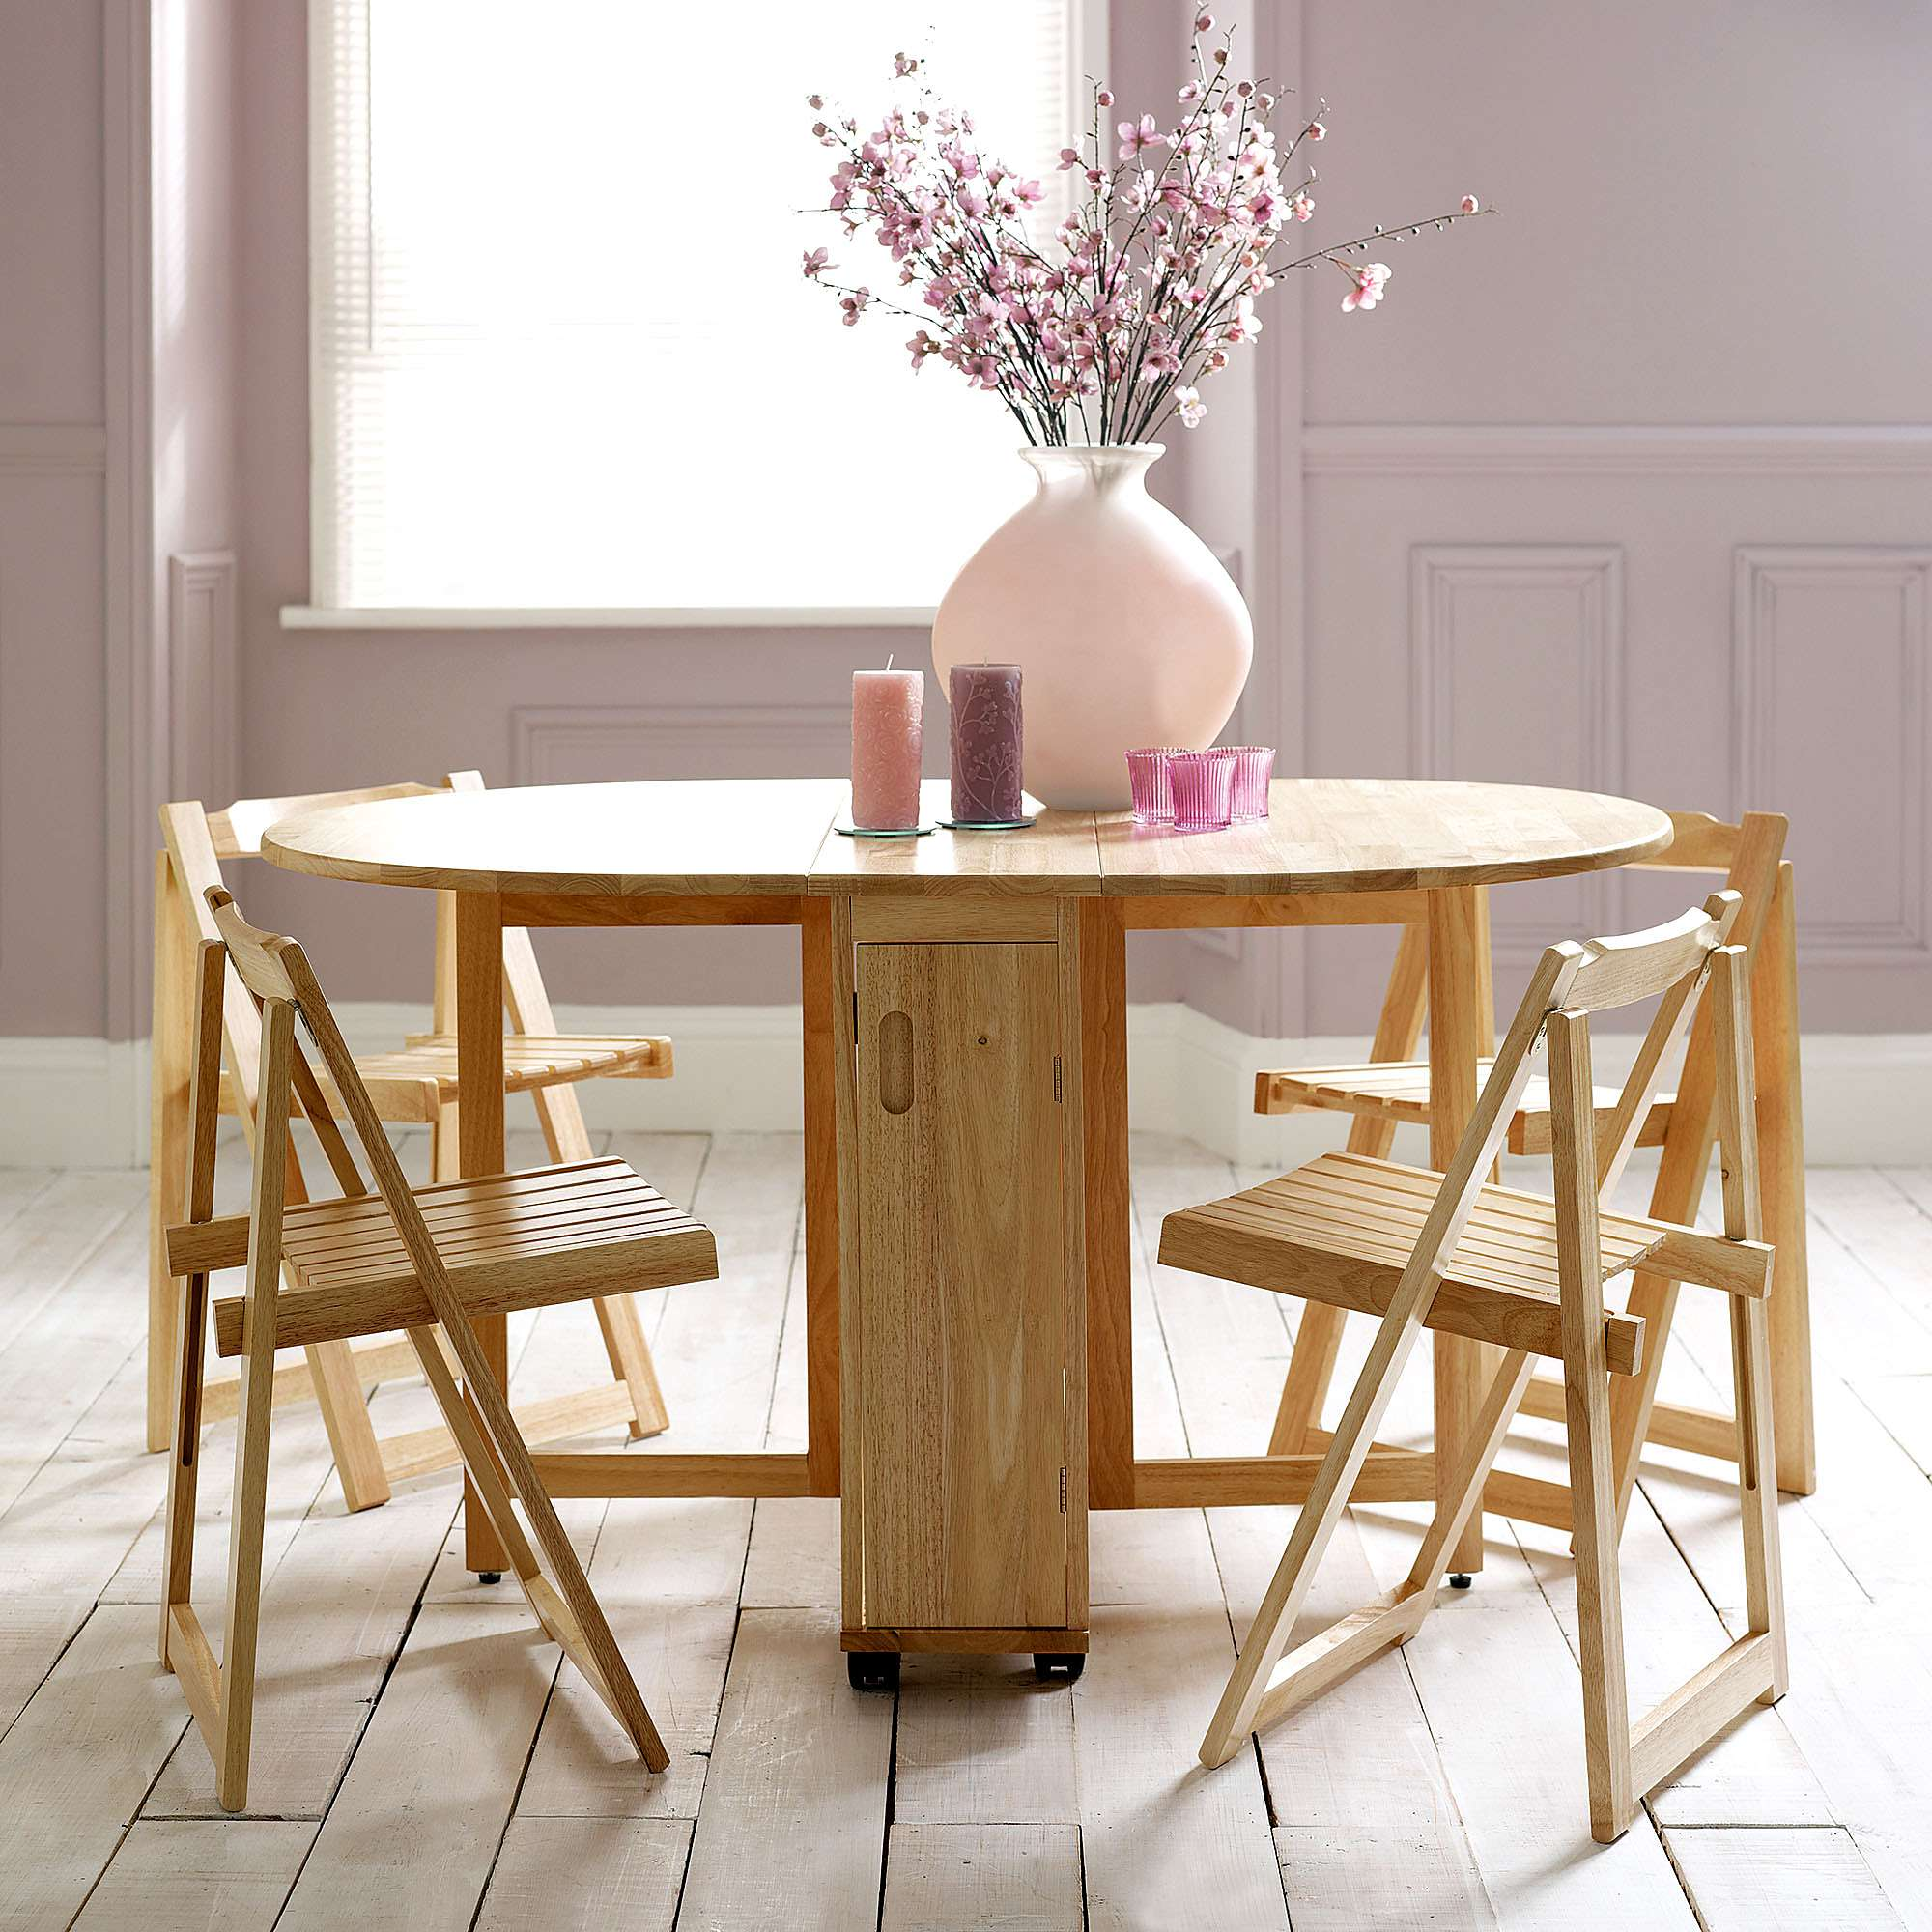 Dining Table Rollins Dining Table: Choose A Folding Dining Table For A Small Space